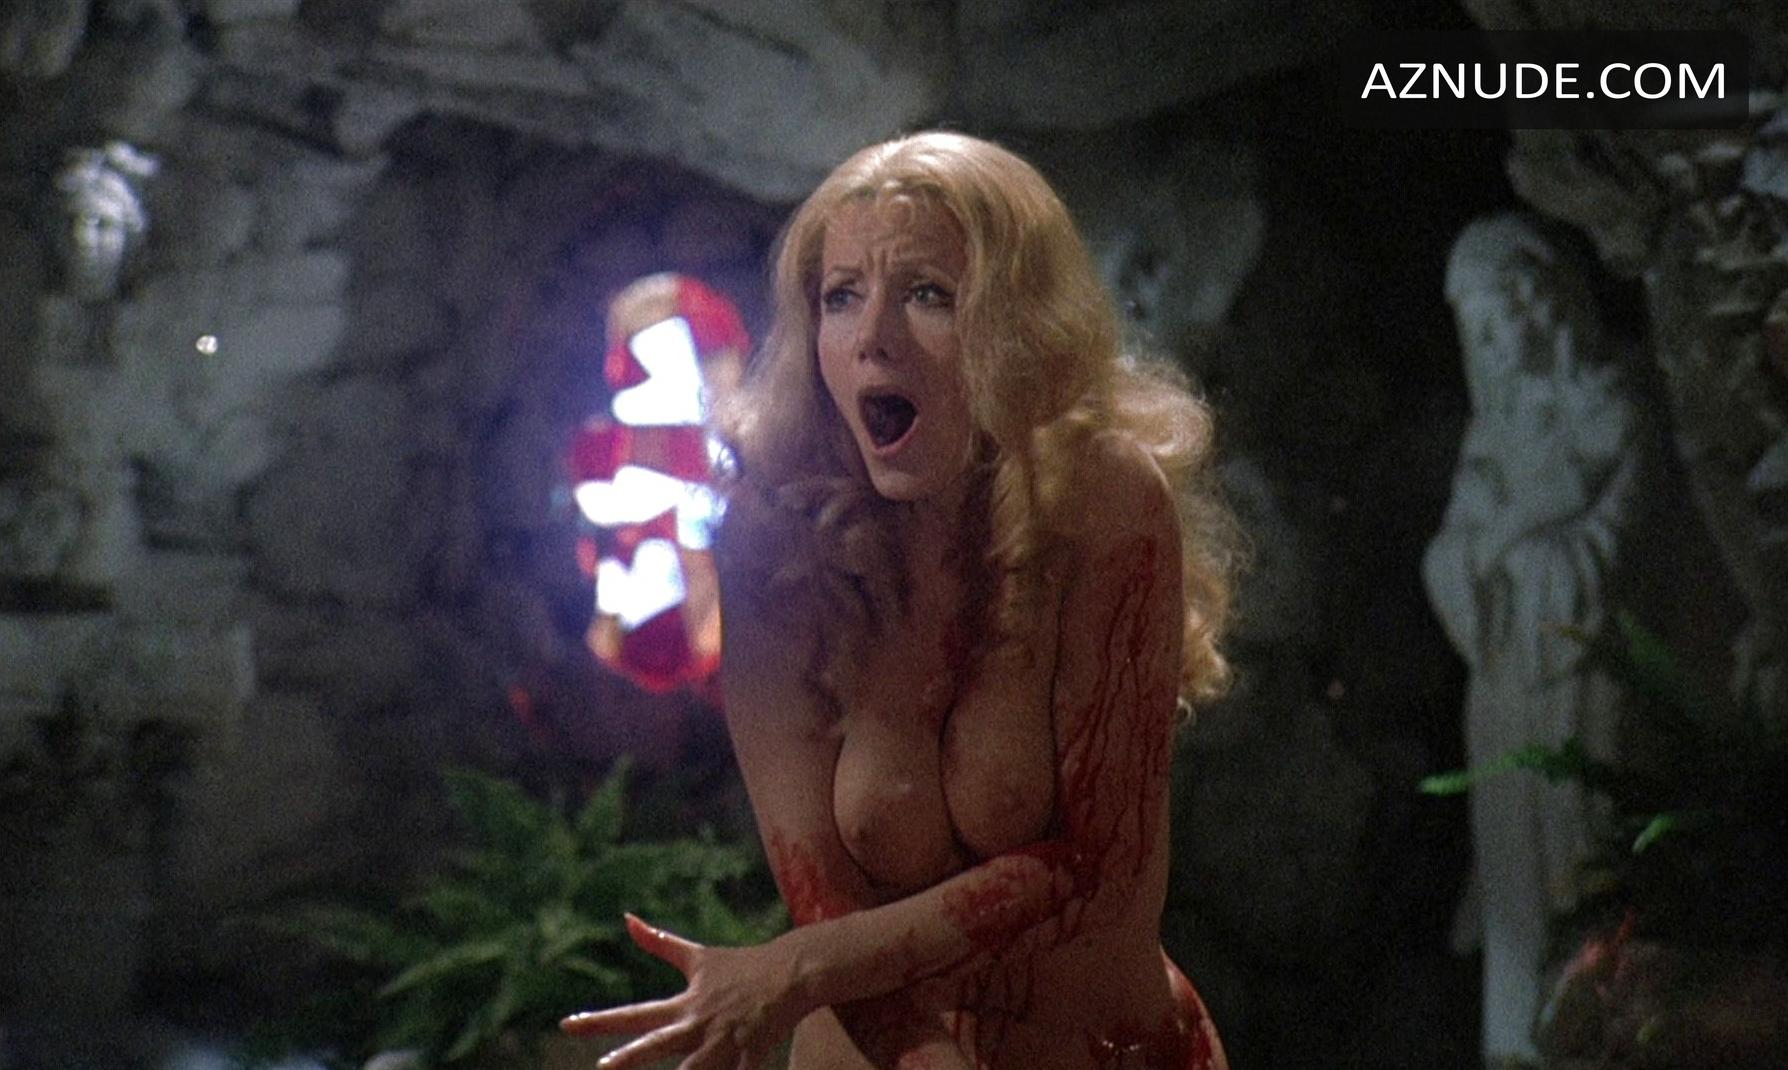 Ingrid Pitt Nude - Naked Pics and Sex Scenes at Mr Skin